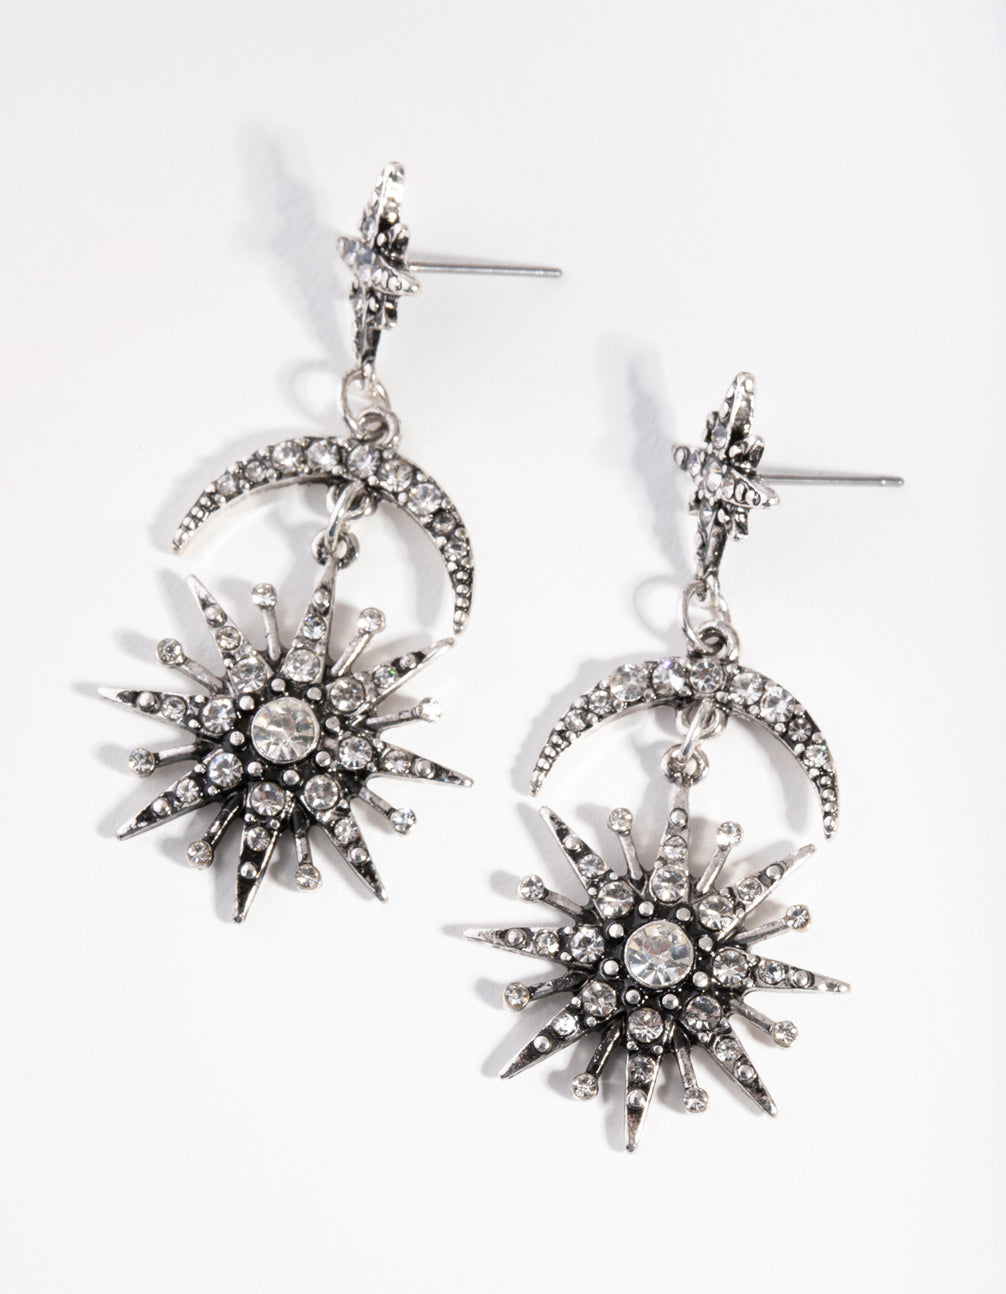 Antique Silver Bedazzled Star Drop Earrings